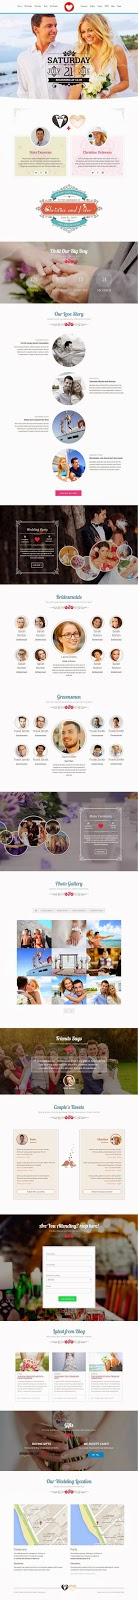 Responsive Wedding Website Themes 2015